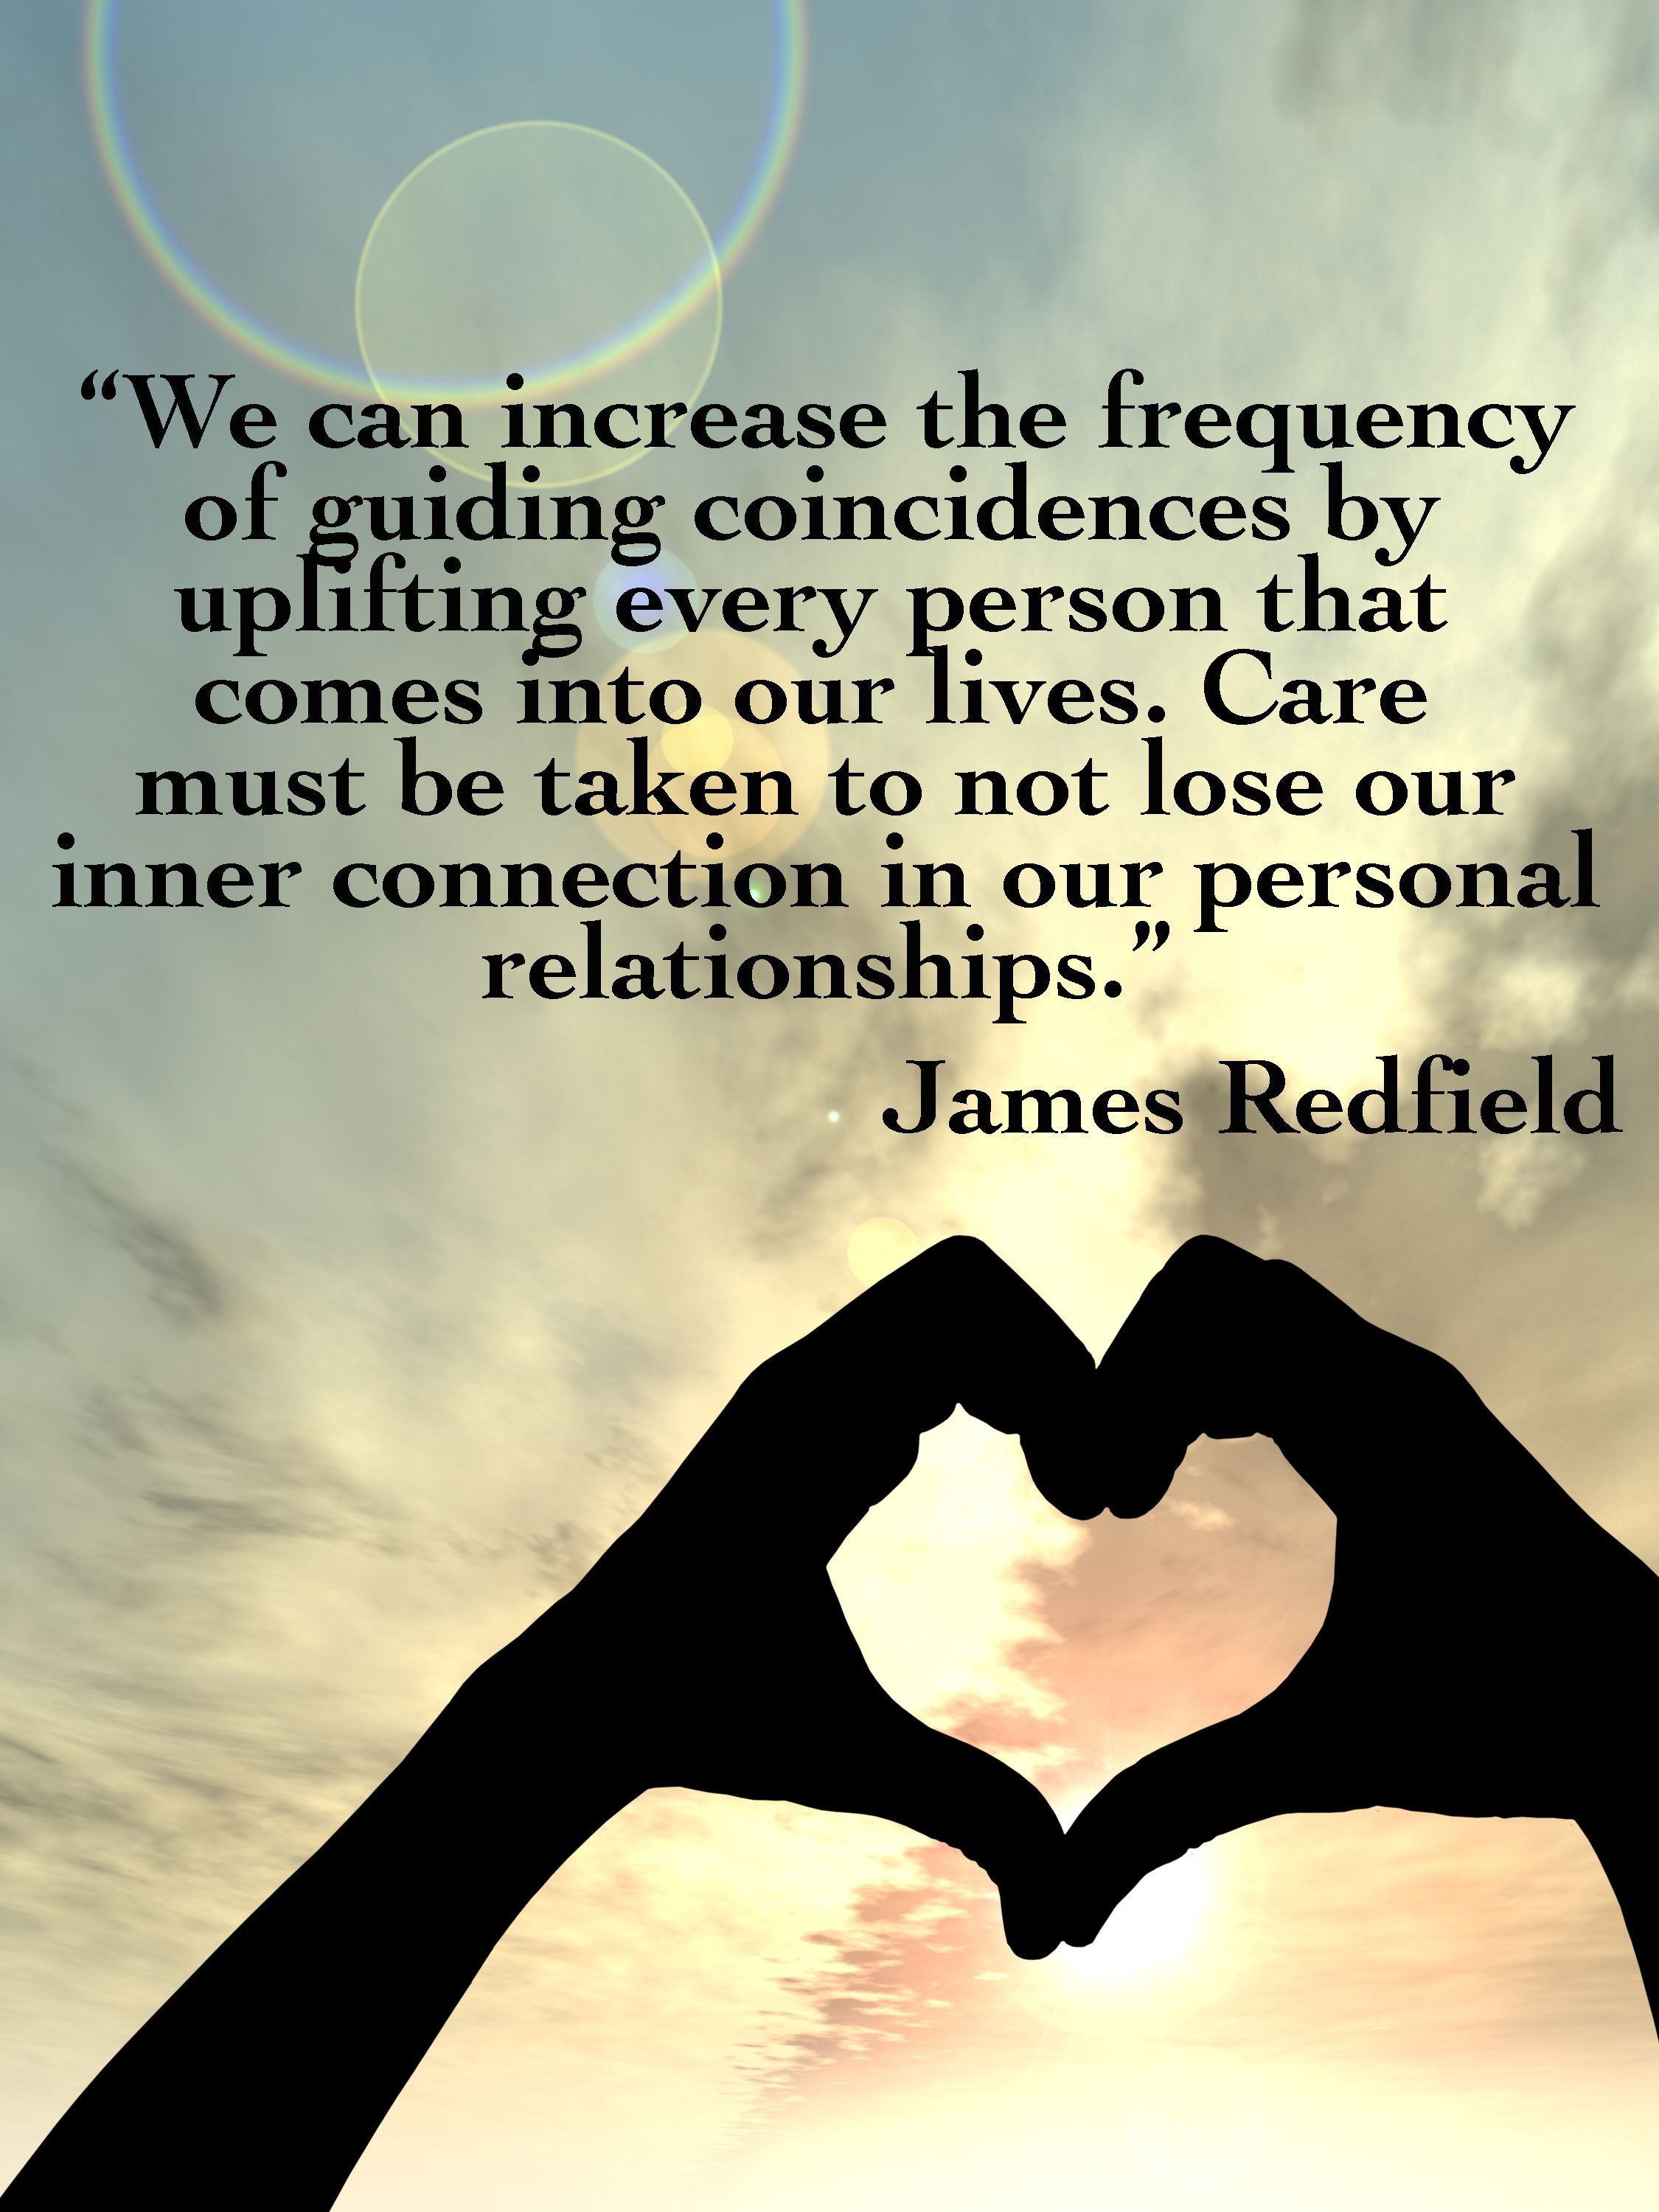 Spiritual Quotes About Love Inspirational And Spiritual Quotesjames Redfield  Celestine